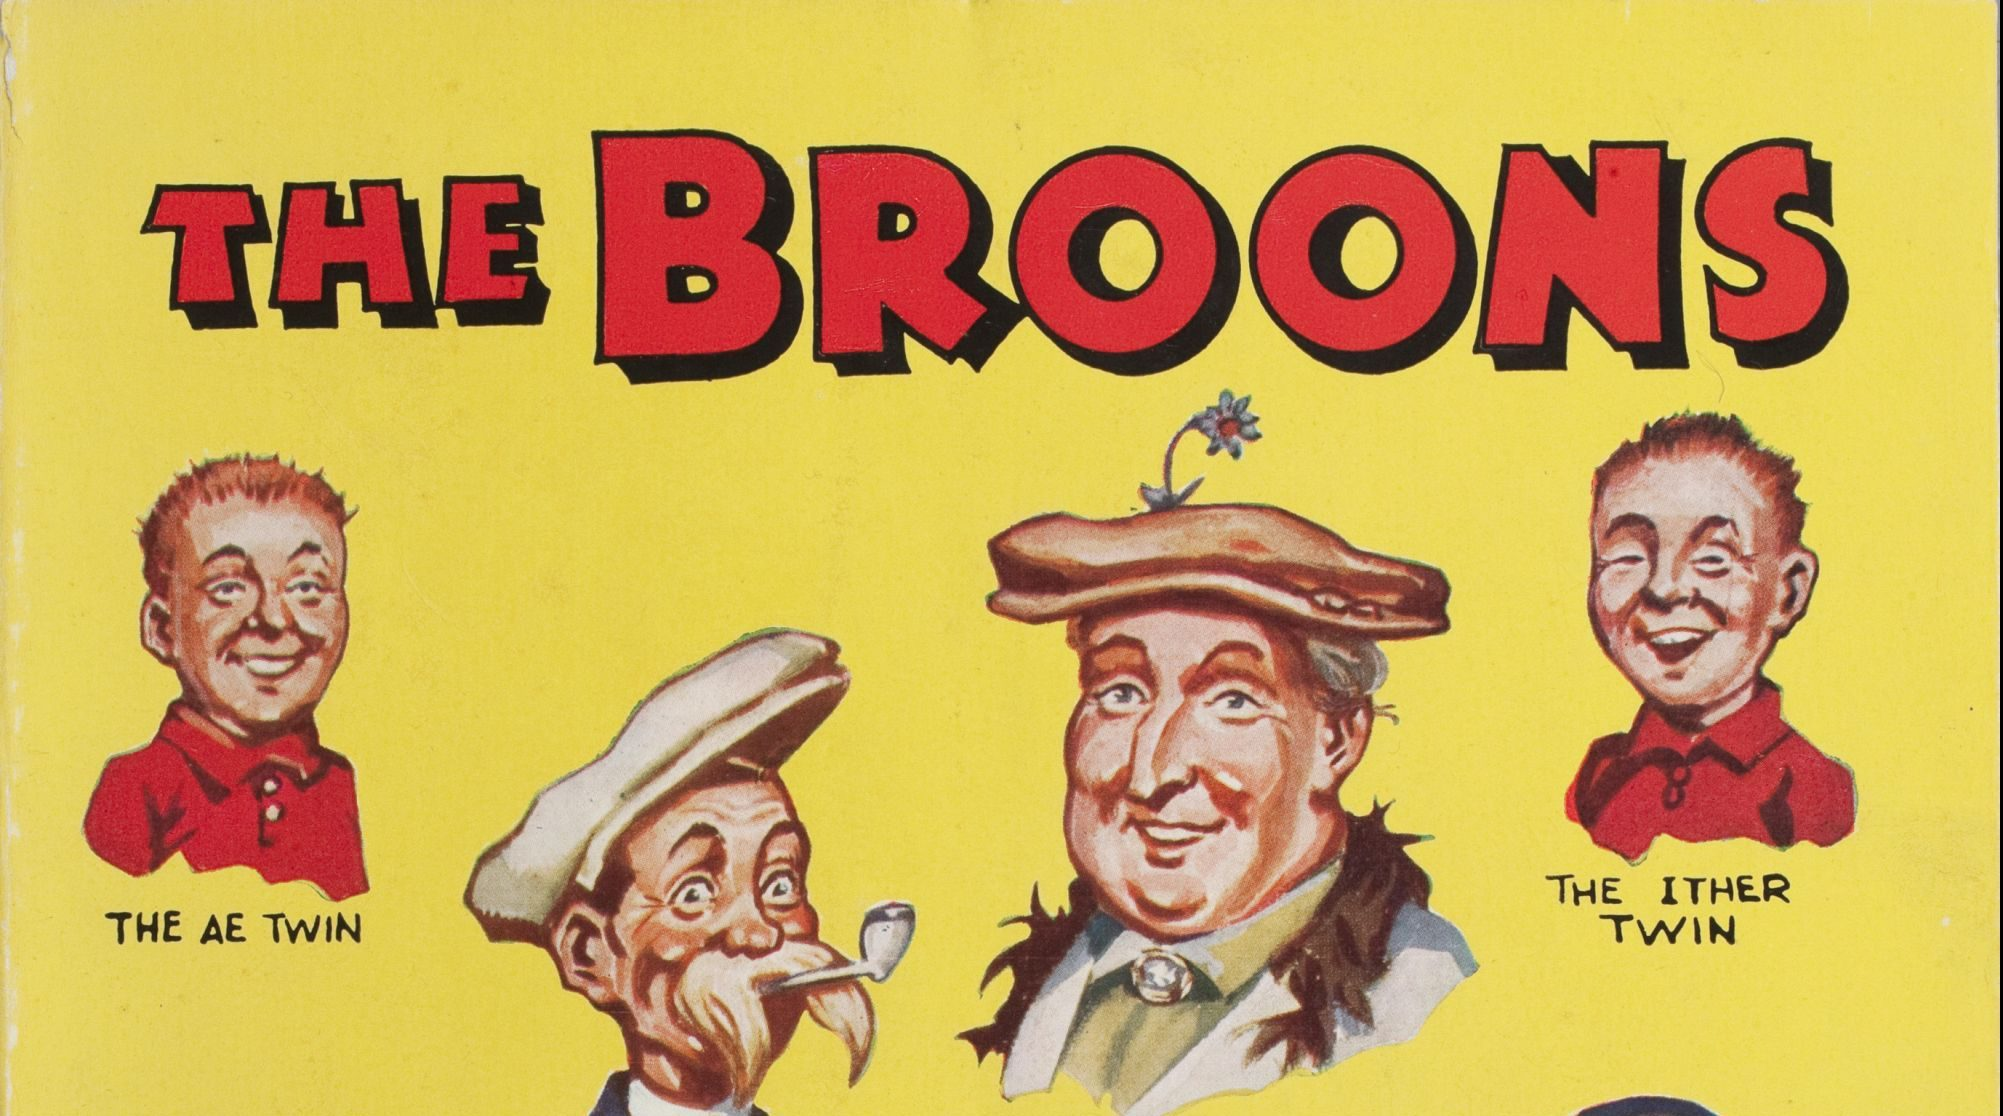 Dundee's popular comic book family, the Broons.